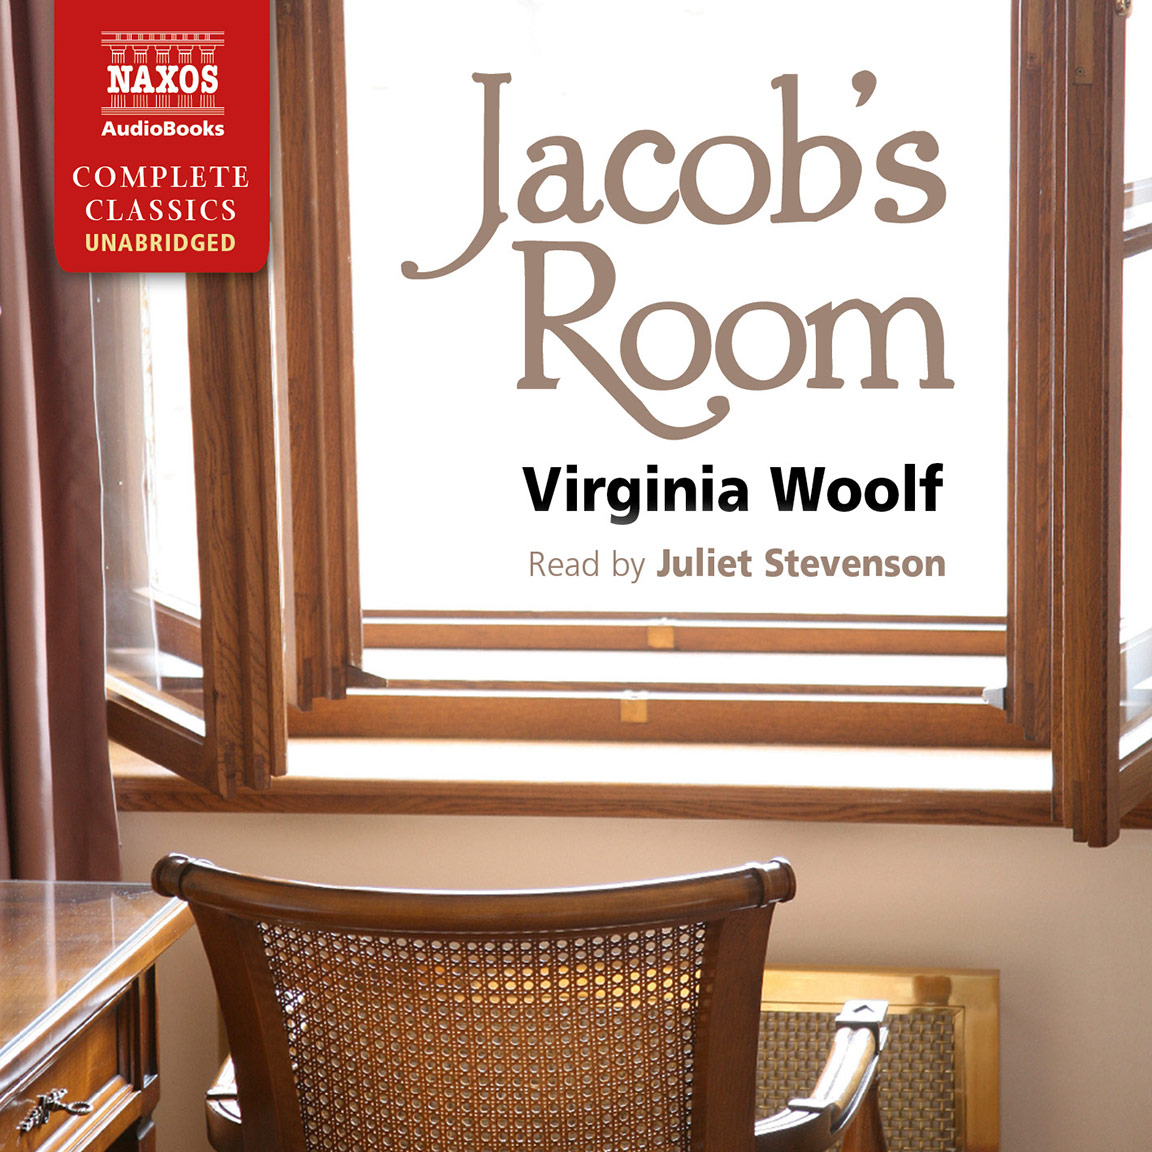 Jacob's Room (unabridged)